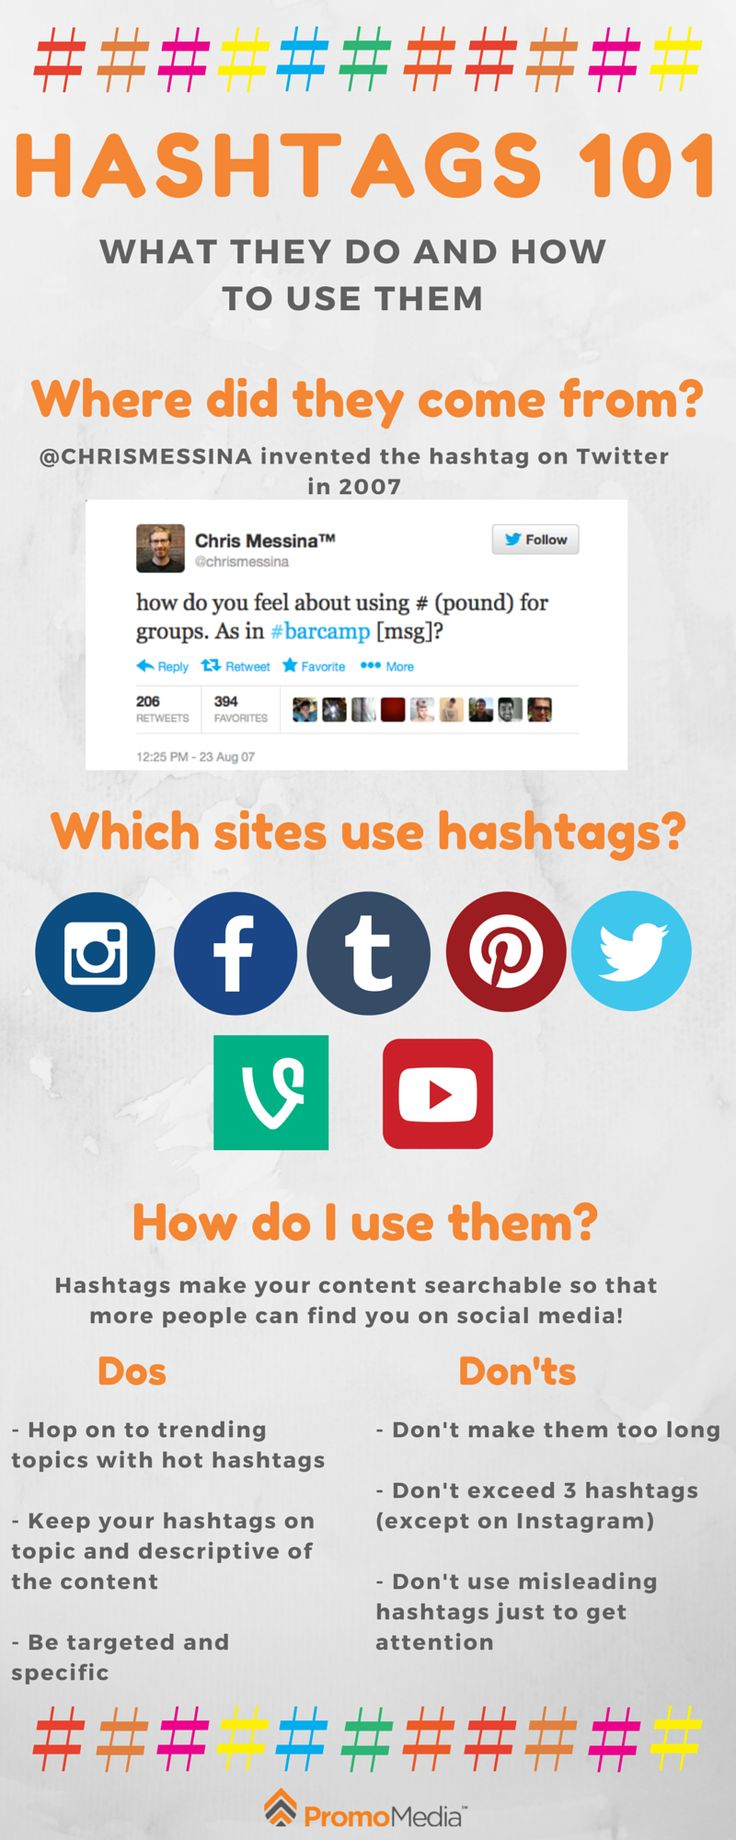 Hashtags 101: What They Do and How to Use Them